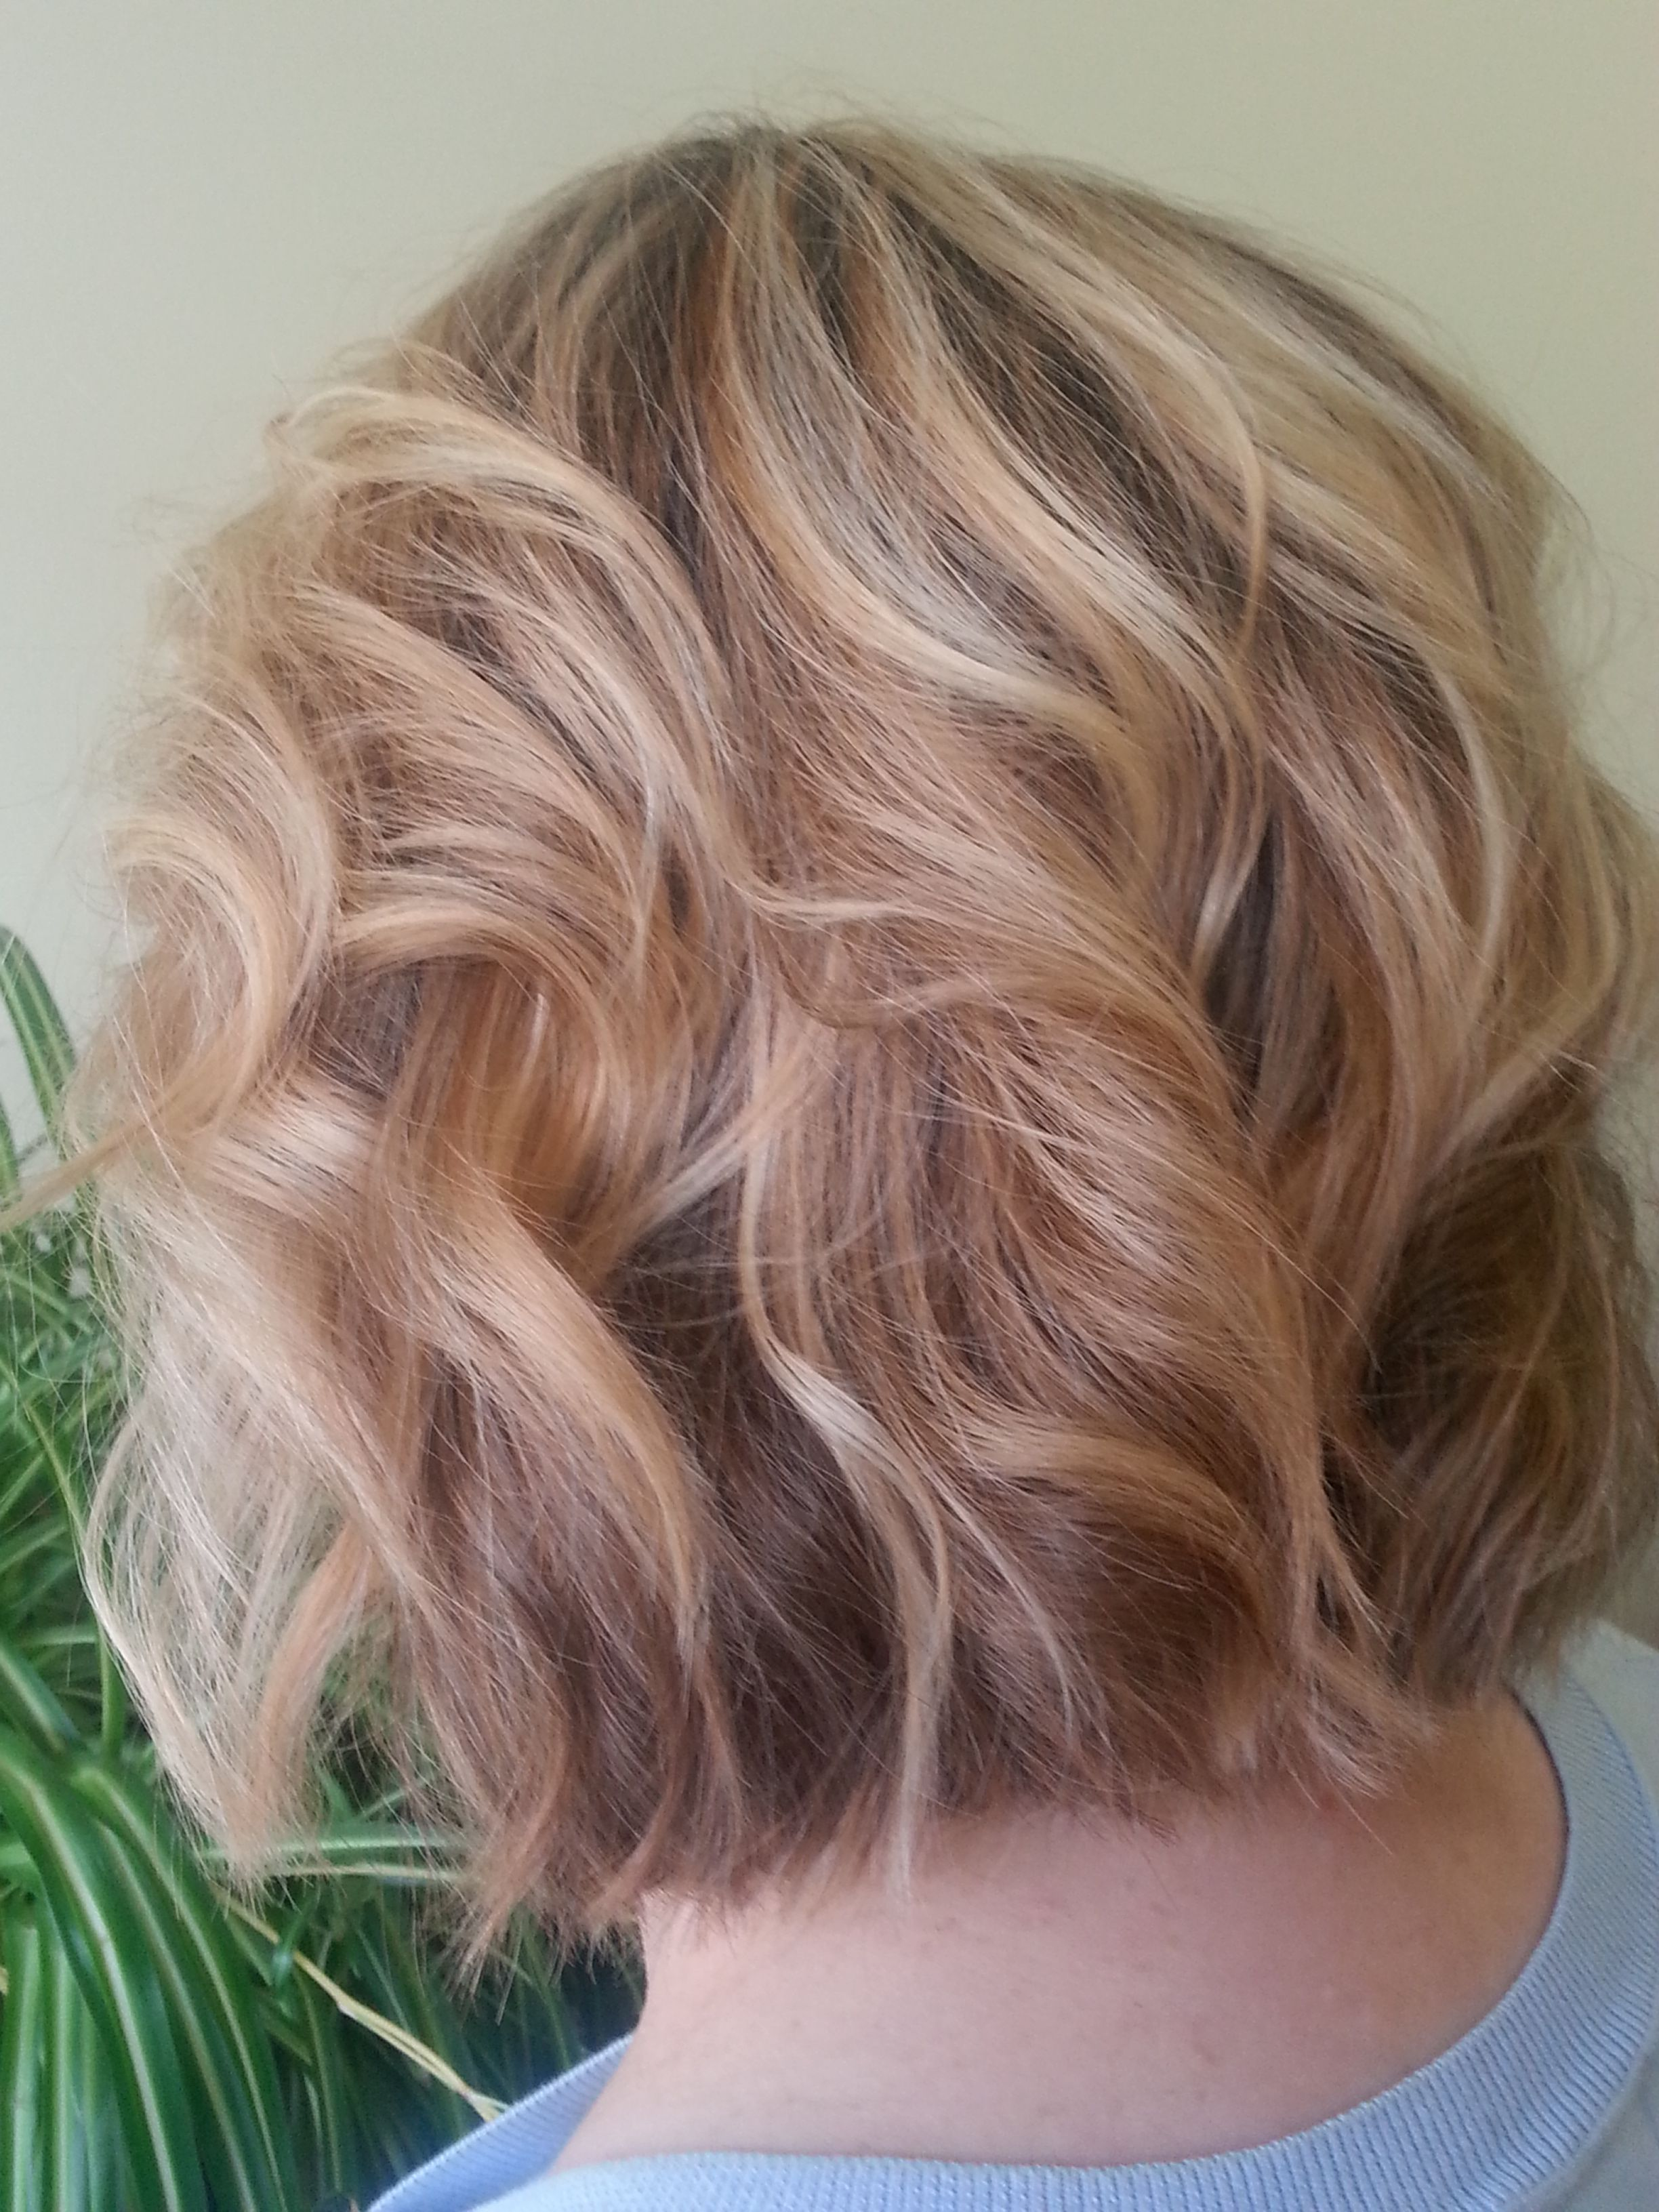 Wondrous Blonde Balayage On Short Hair With Long Layers Color And Cut By Hairstyles For Men Maxibearus